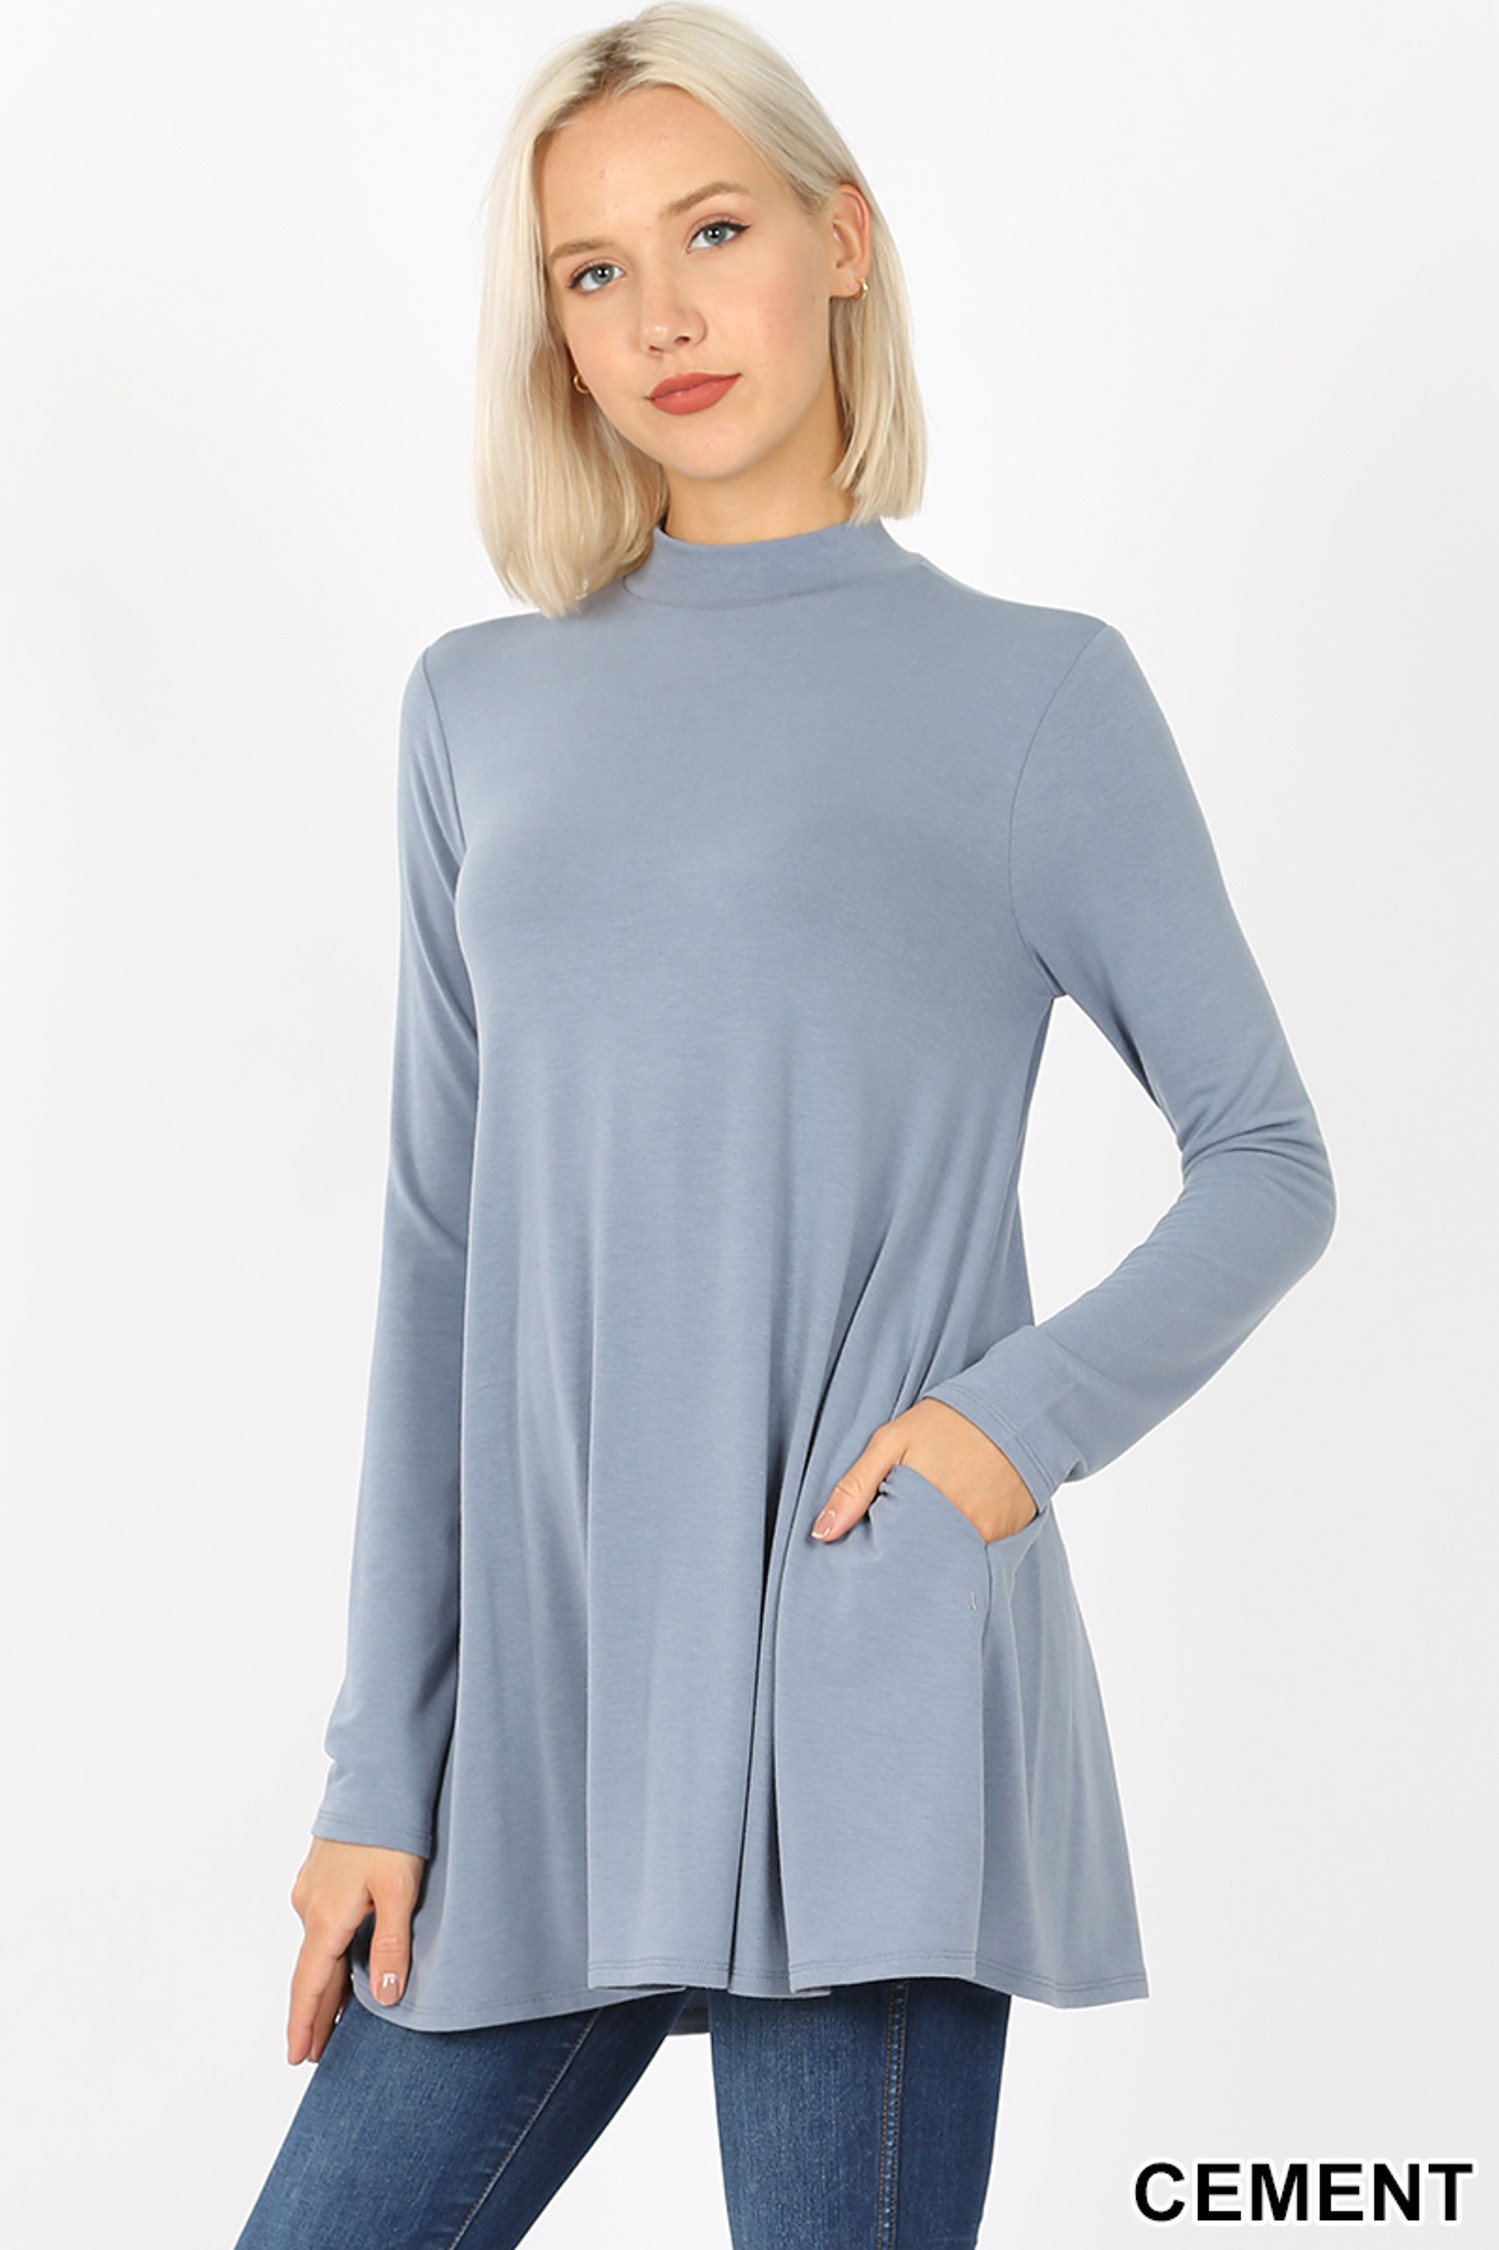 45 degree left side image of Cement Long Sleeve Mock Neck Top with Pockets